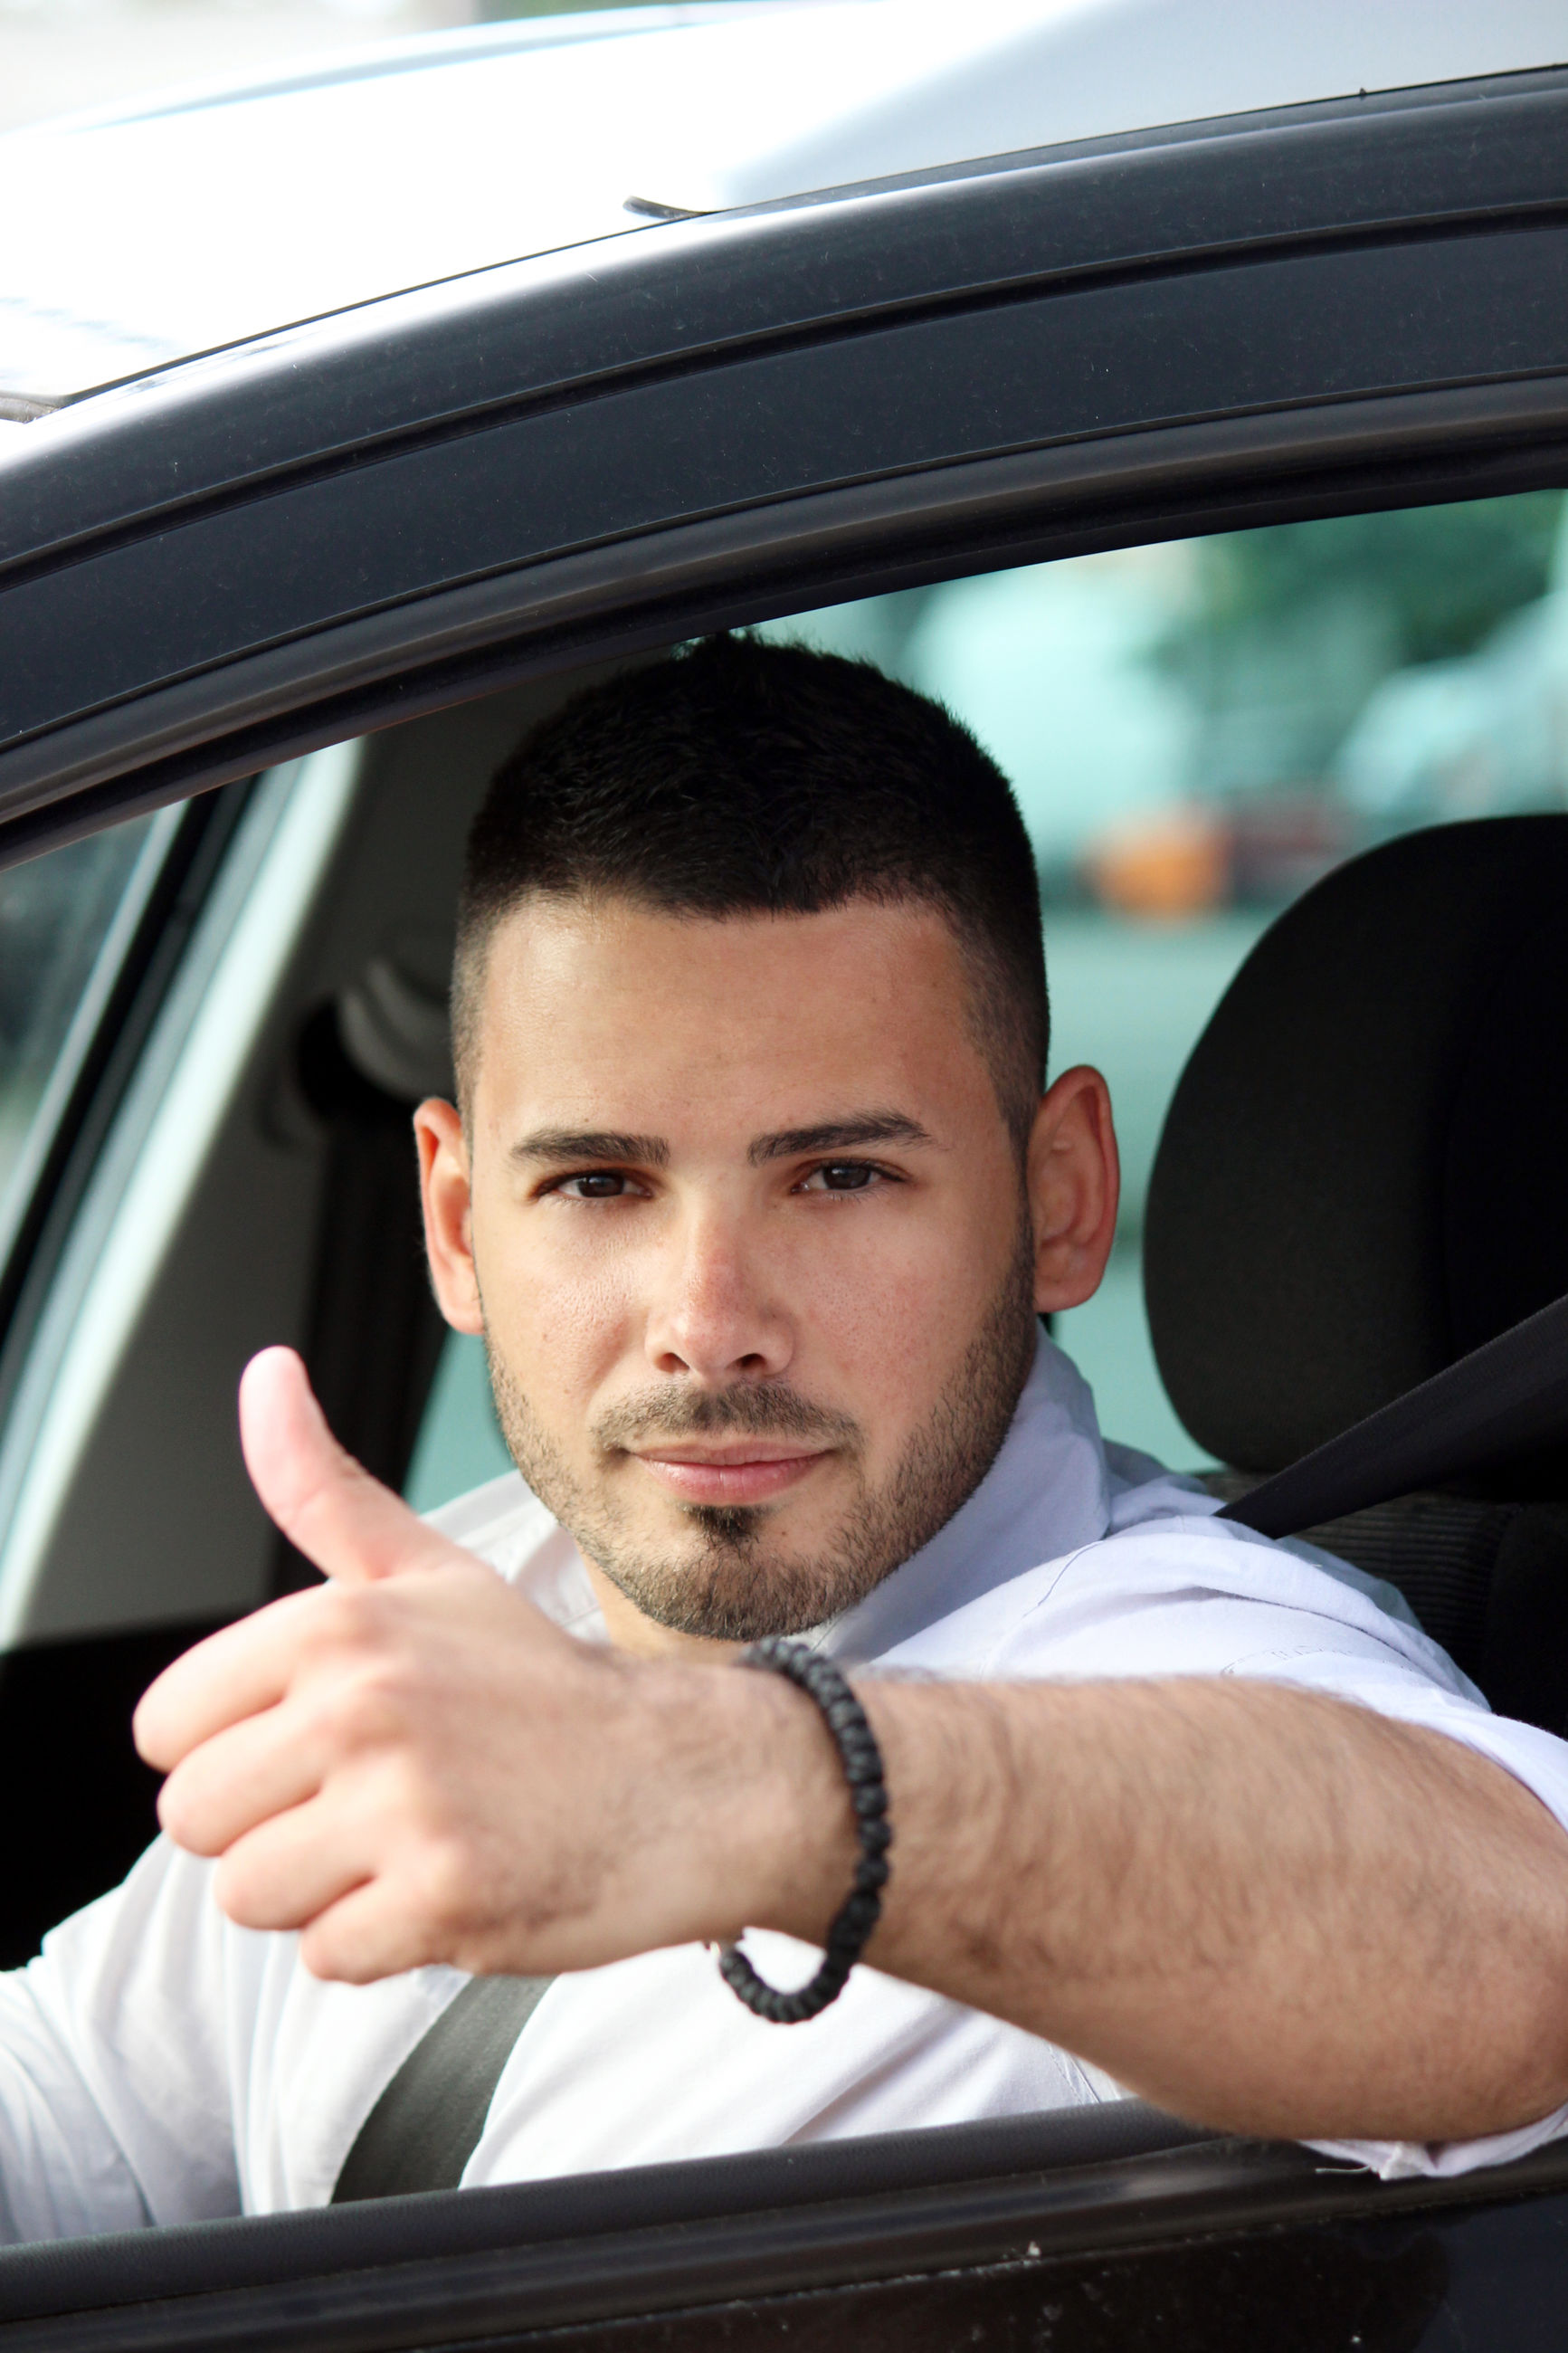 PORTRAIT OF YOUNG MAN WITH CAR